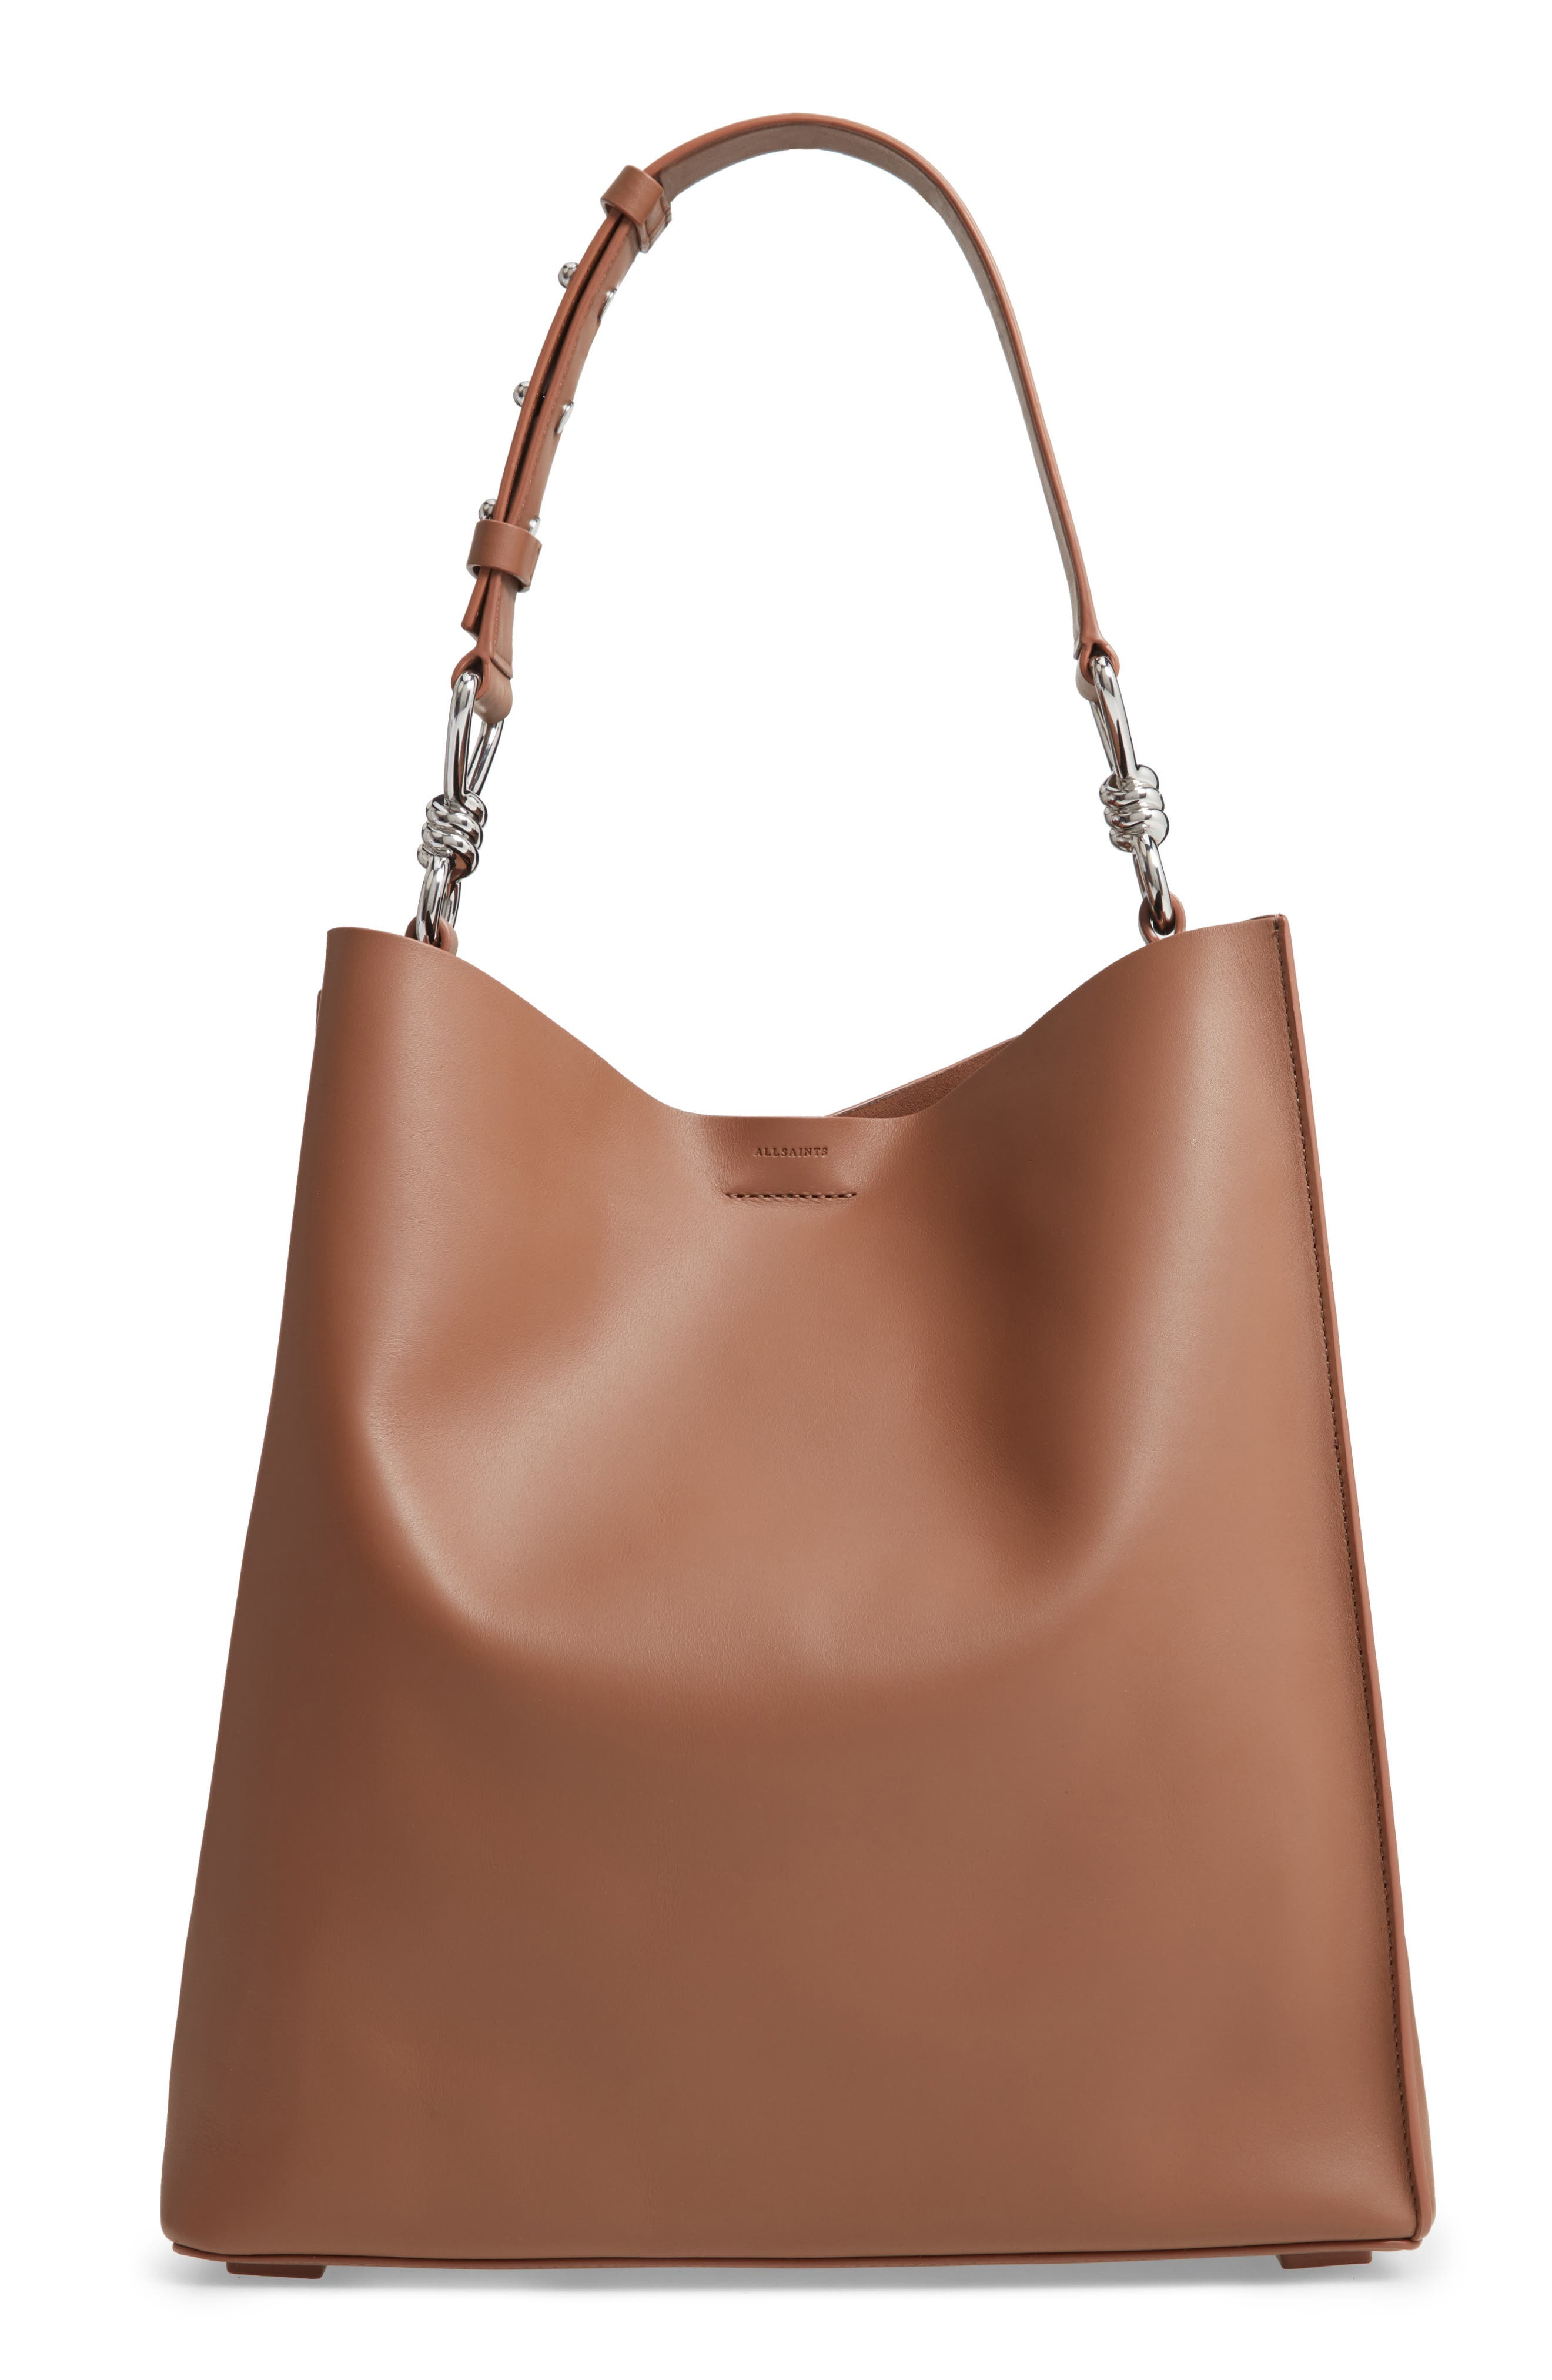 Captain Leather Tote,                             Main thumbnail 1, color,                             MILK CHOCOLATE